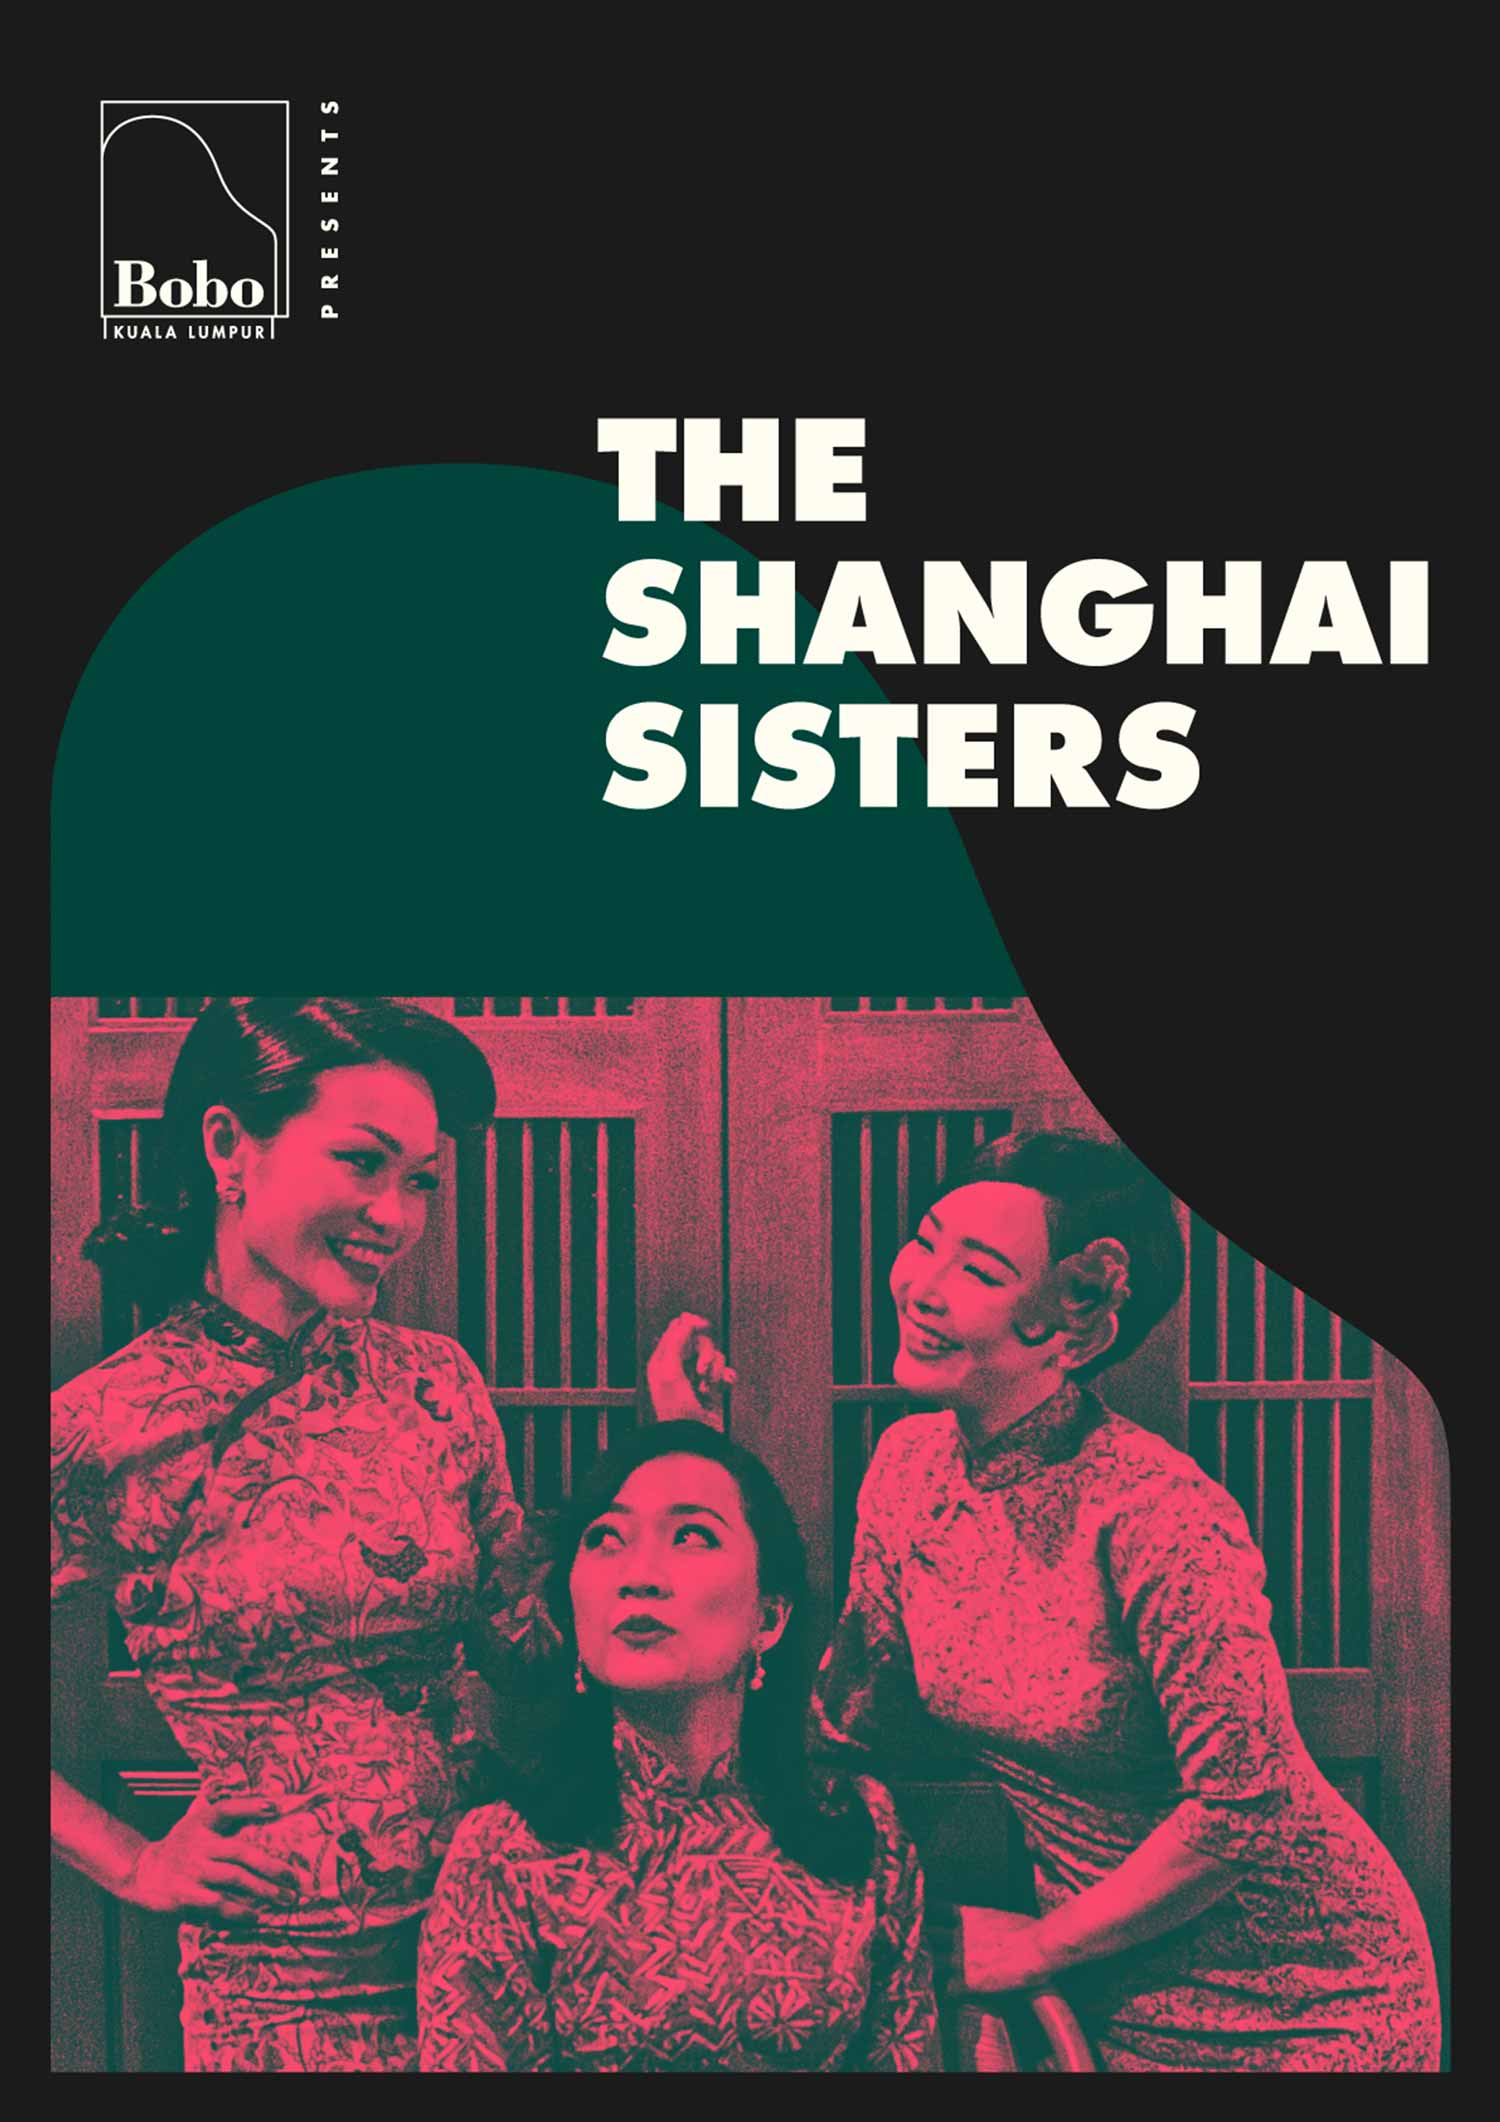 The Shanghai Sisters